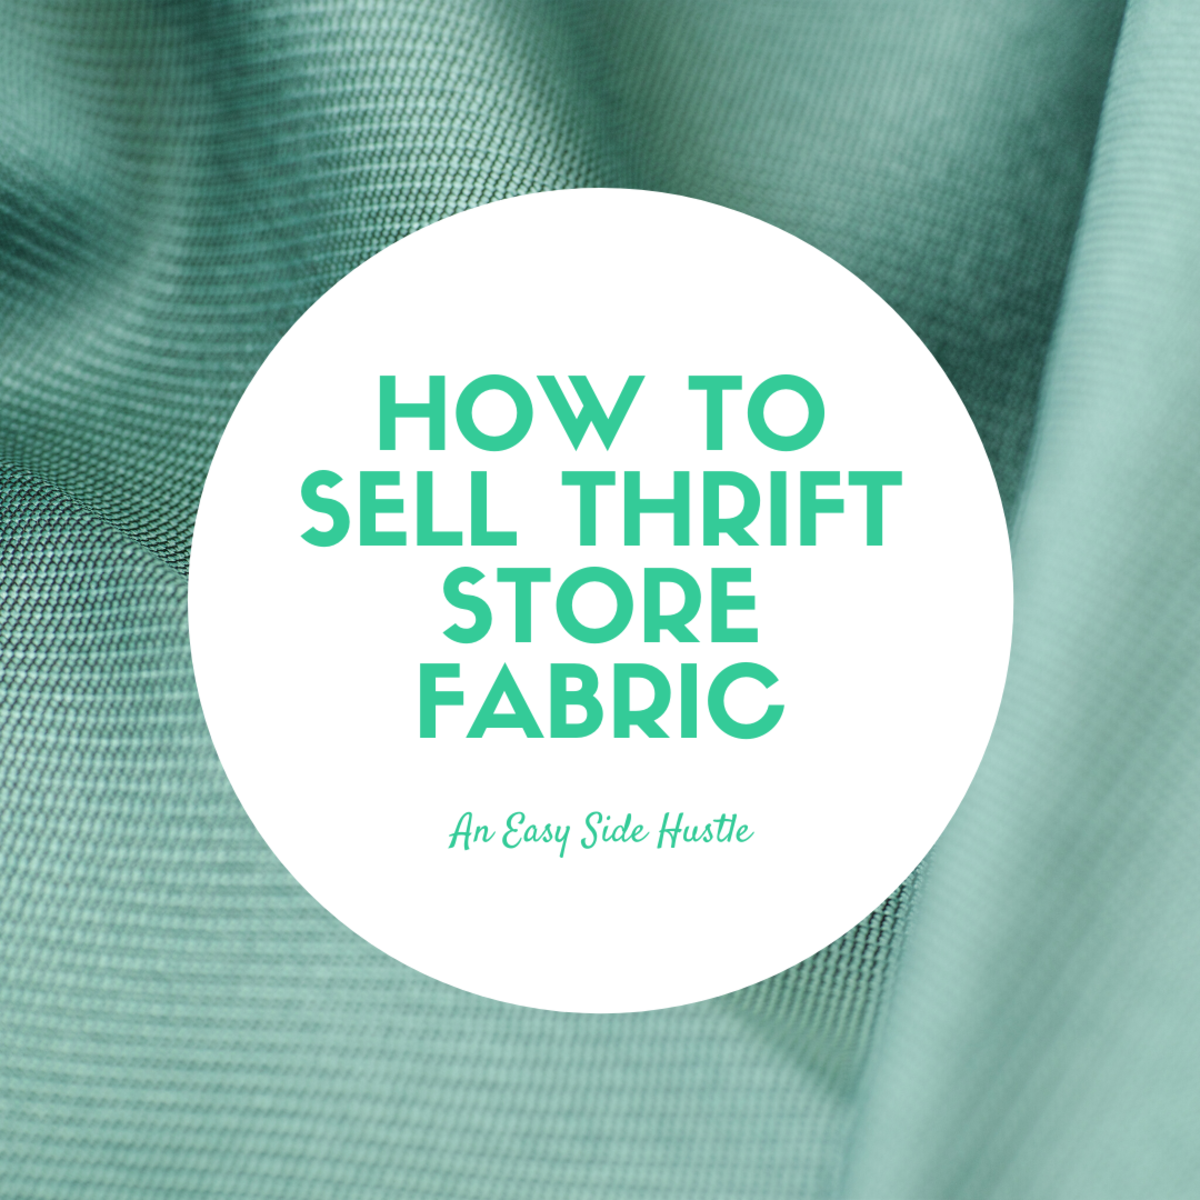 Learn how to make a little extra income by selling thrift store fabric!